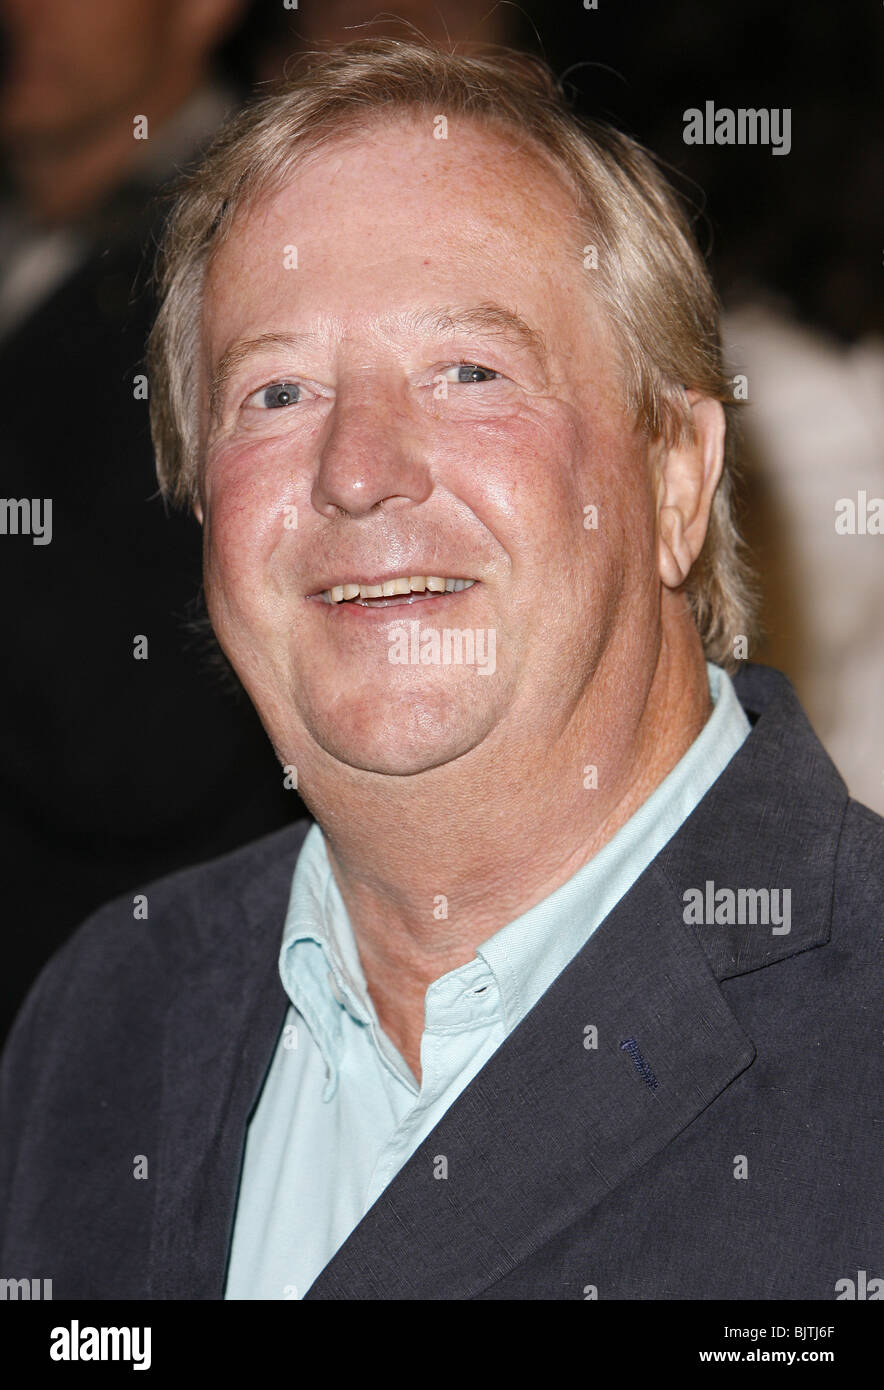 Tim Brooke-Taylor